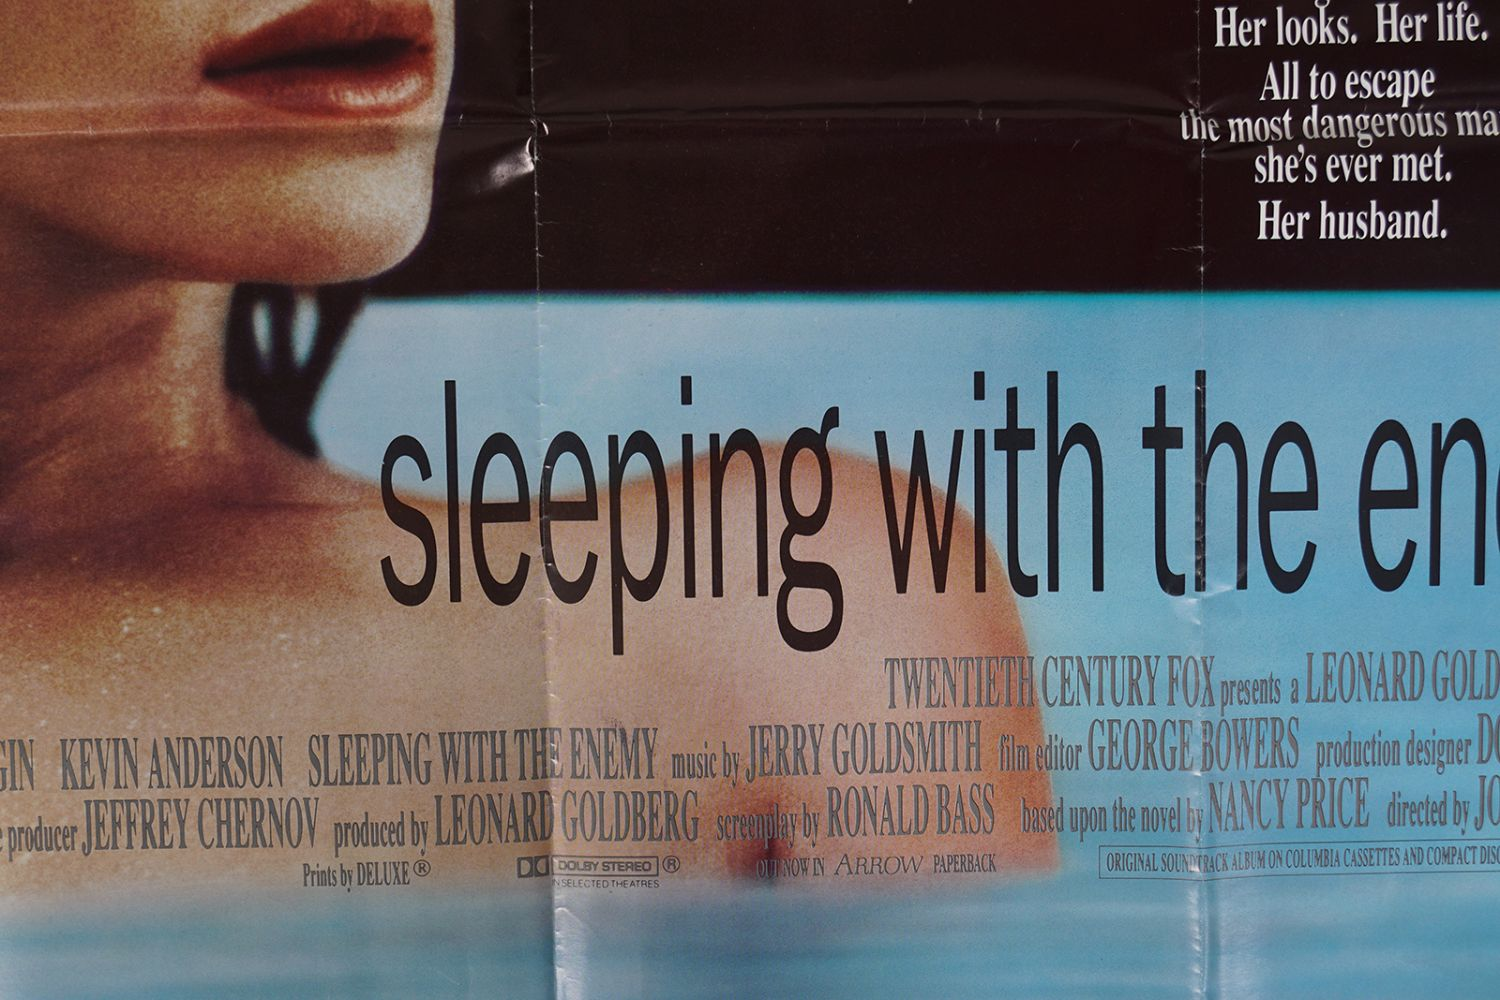 SLEEPING WITH THE ENEMY - Image 2 of 5